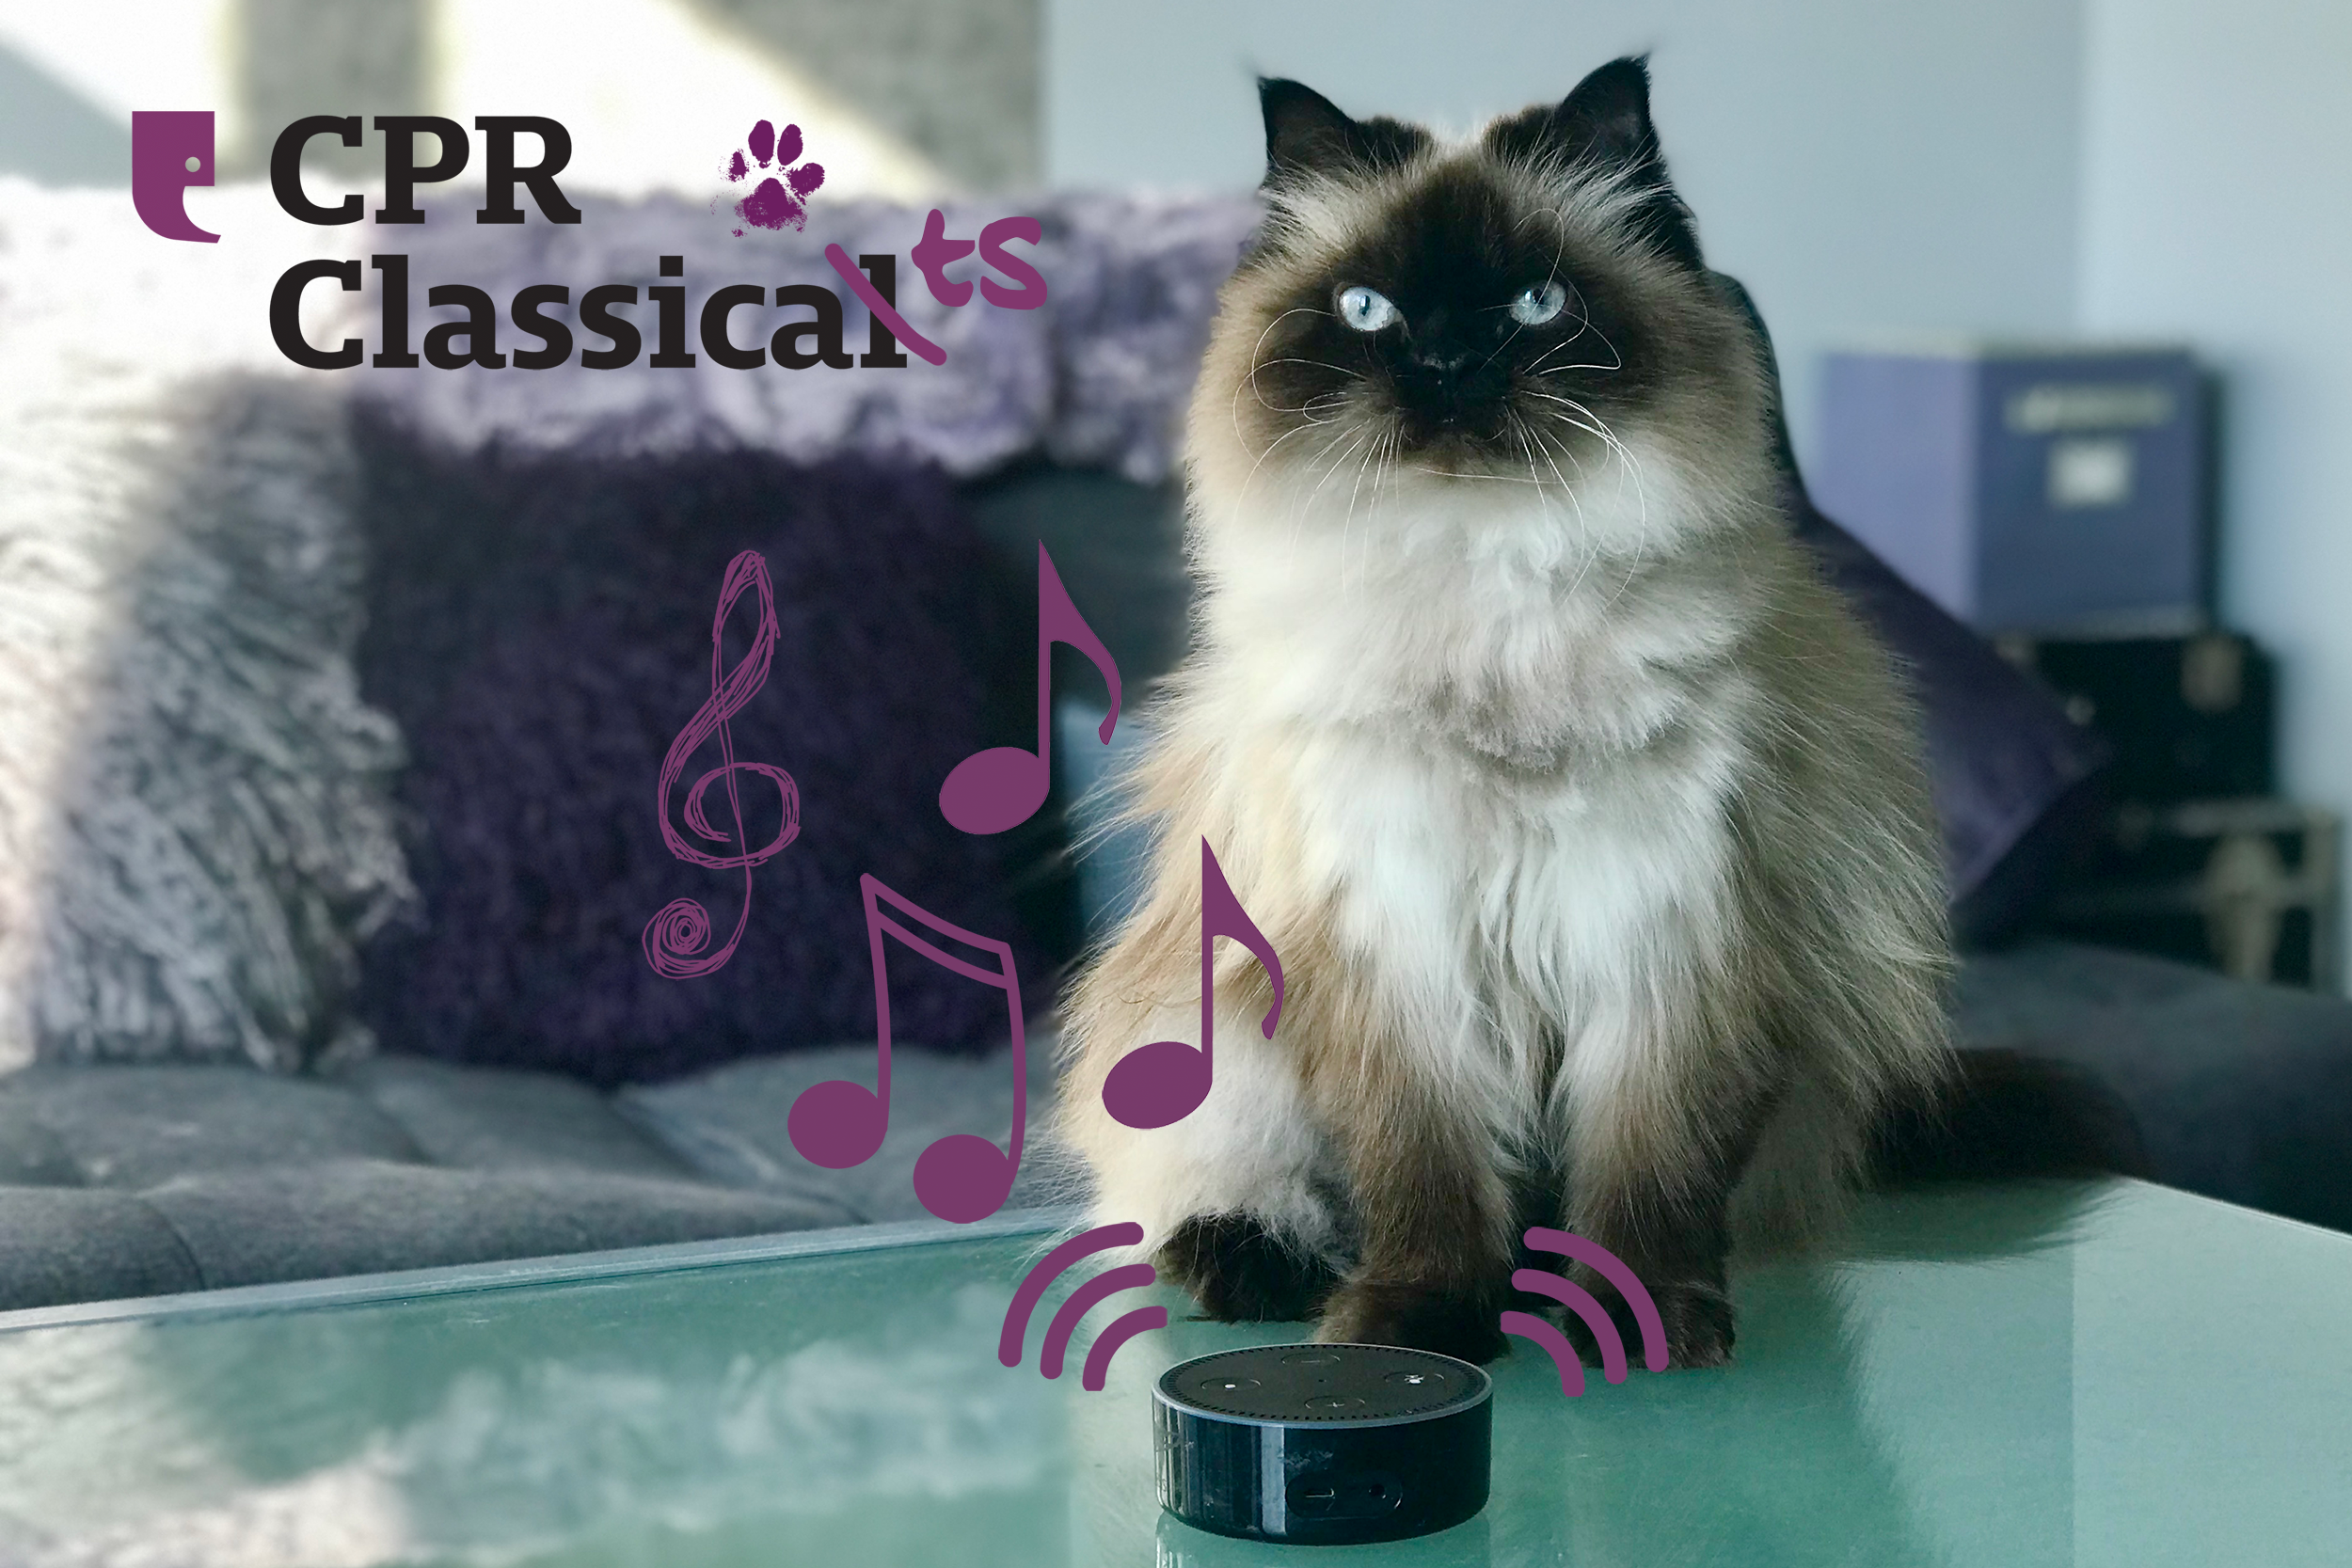 A cat named Bella sits on a table listening to a smart speaker with cartoon music notes floating out of it.